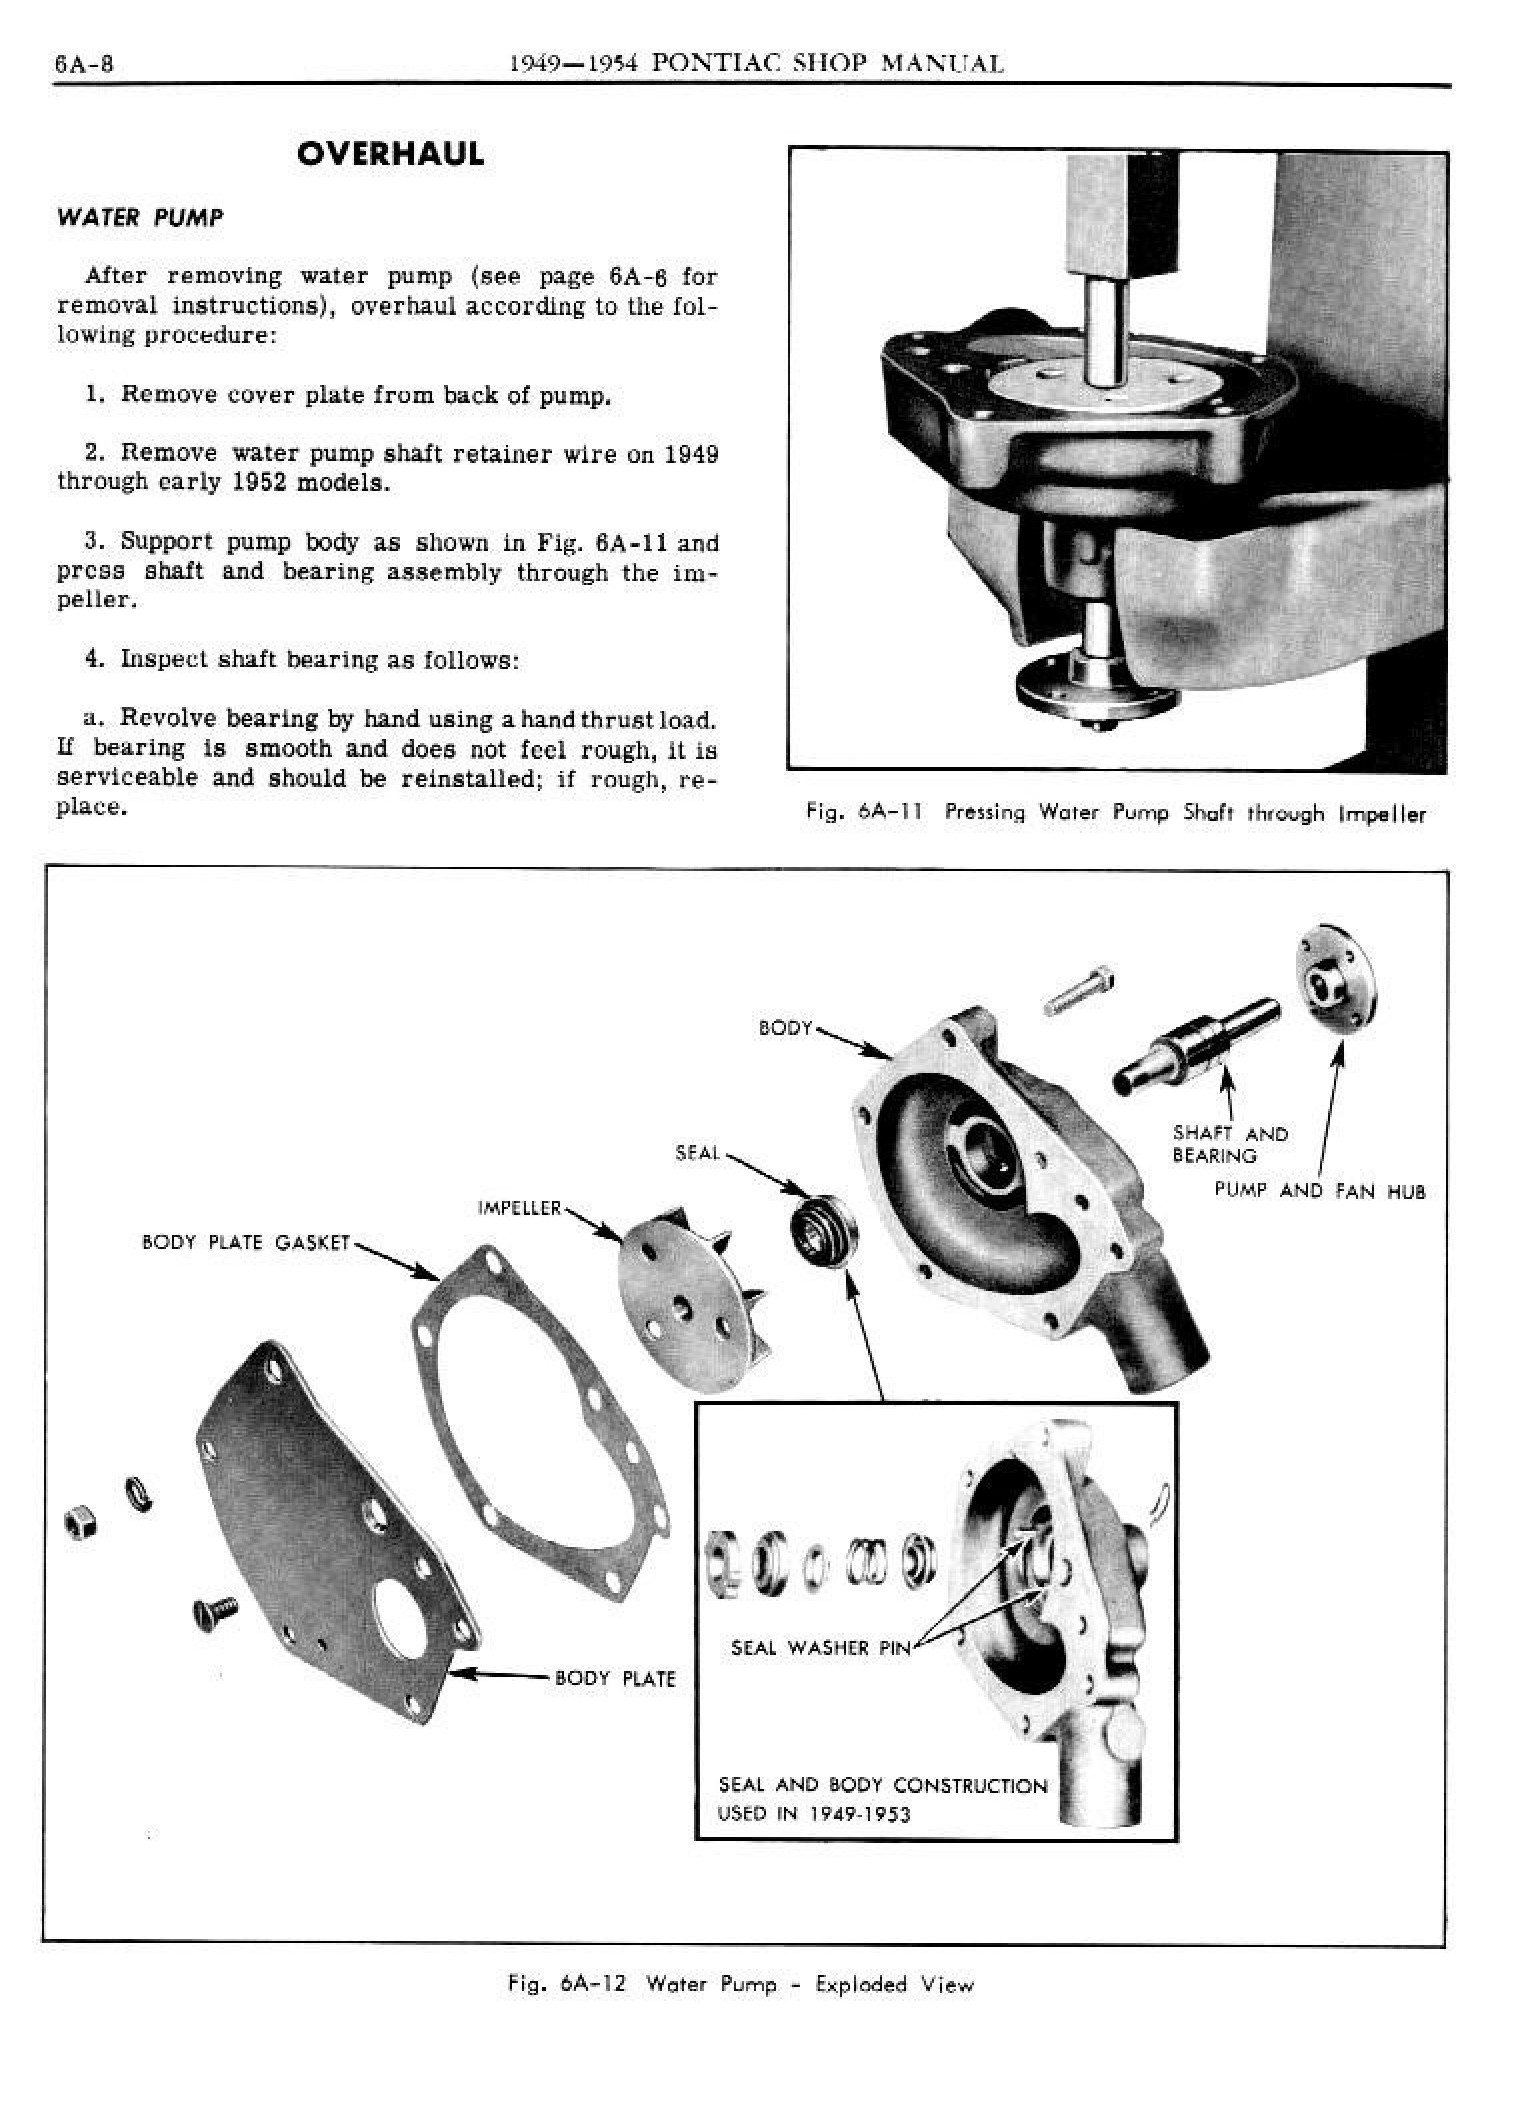 1949 Pontiac Shop Manual- Engine Cooling and Oiling Page 8